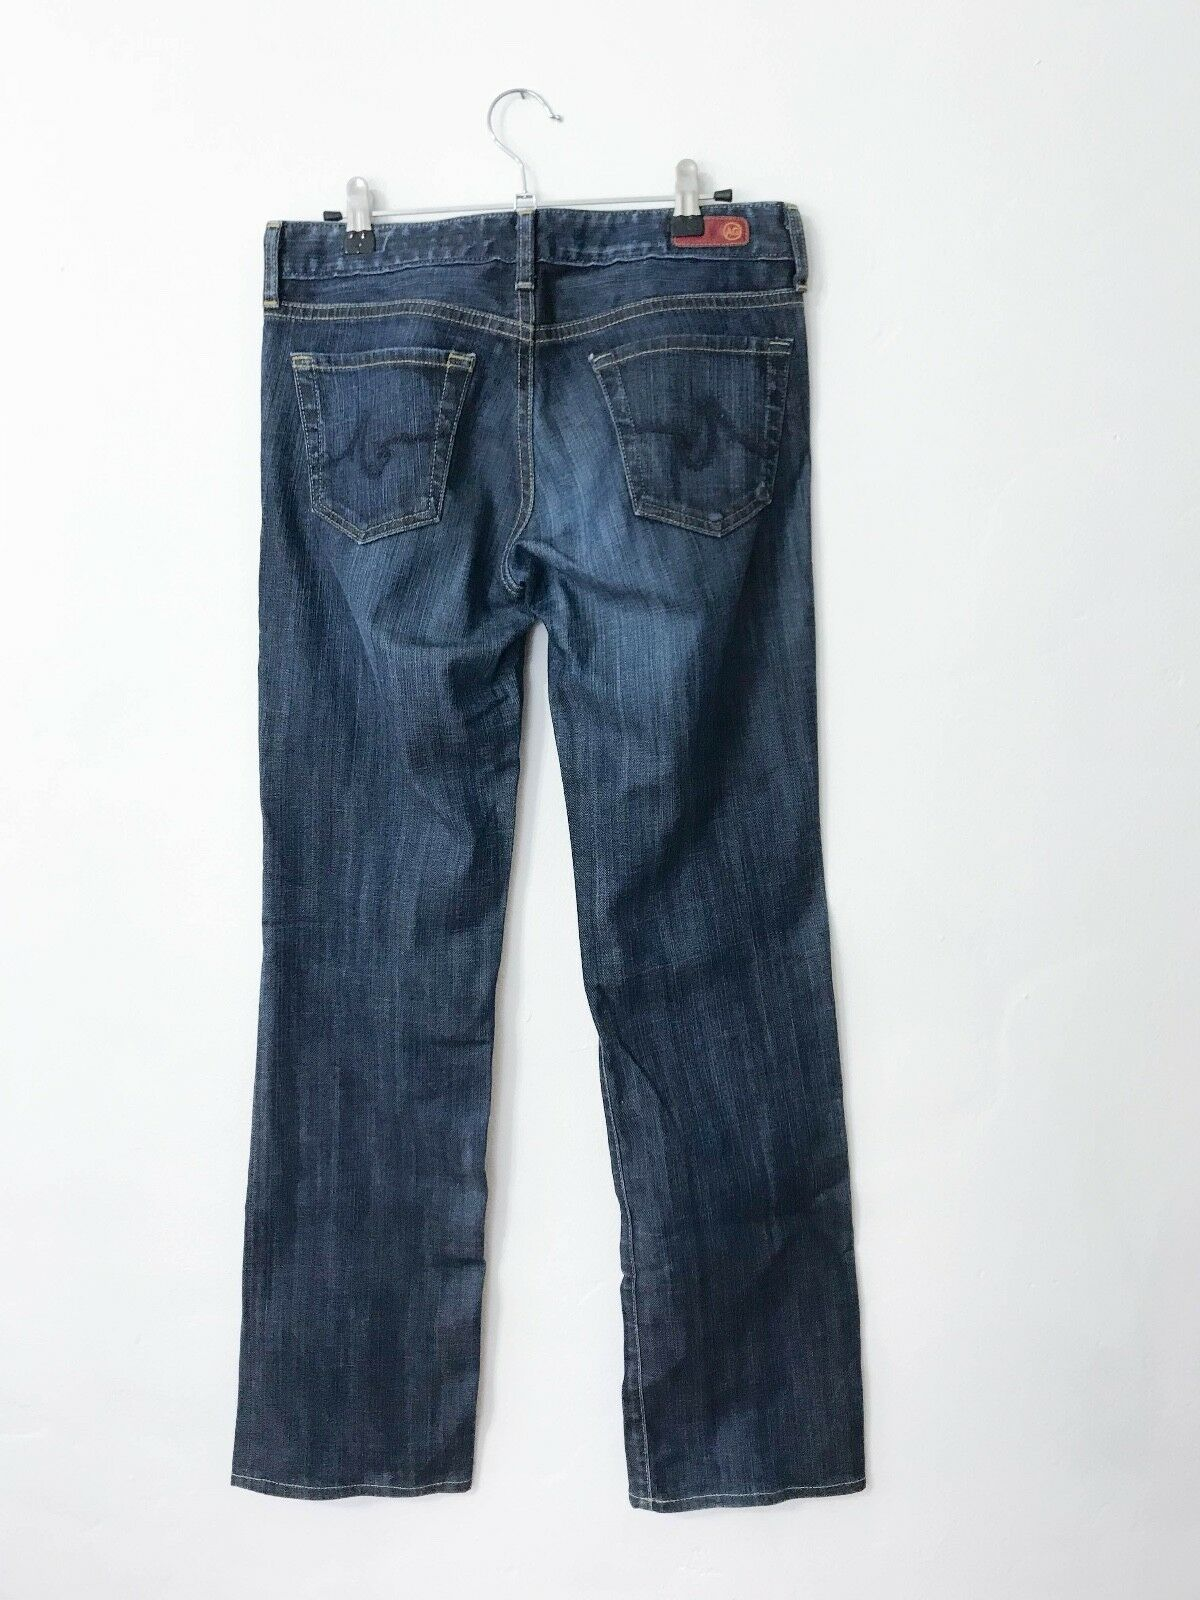 AG Adriano goldschmied The Soiree Low Rise Straight Leg Jeans - Size 27R